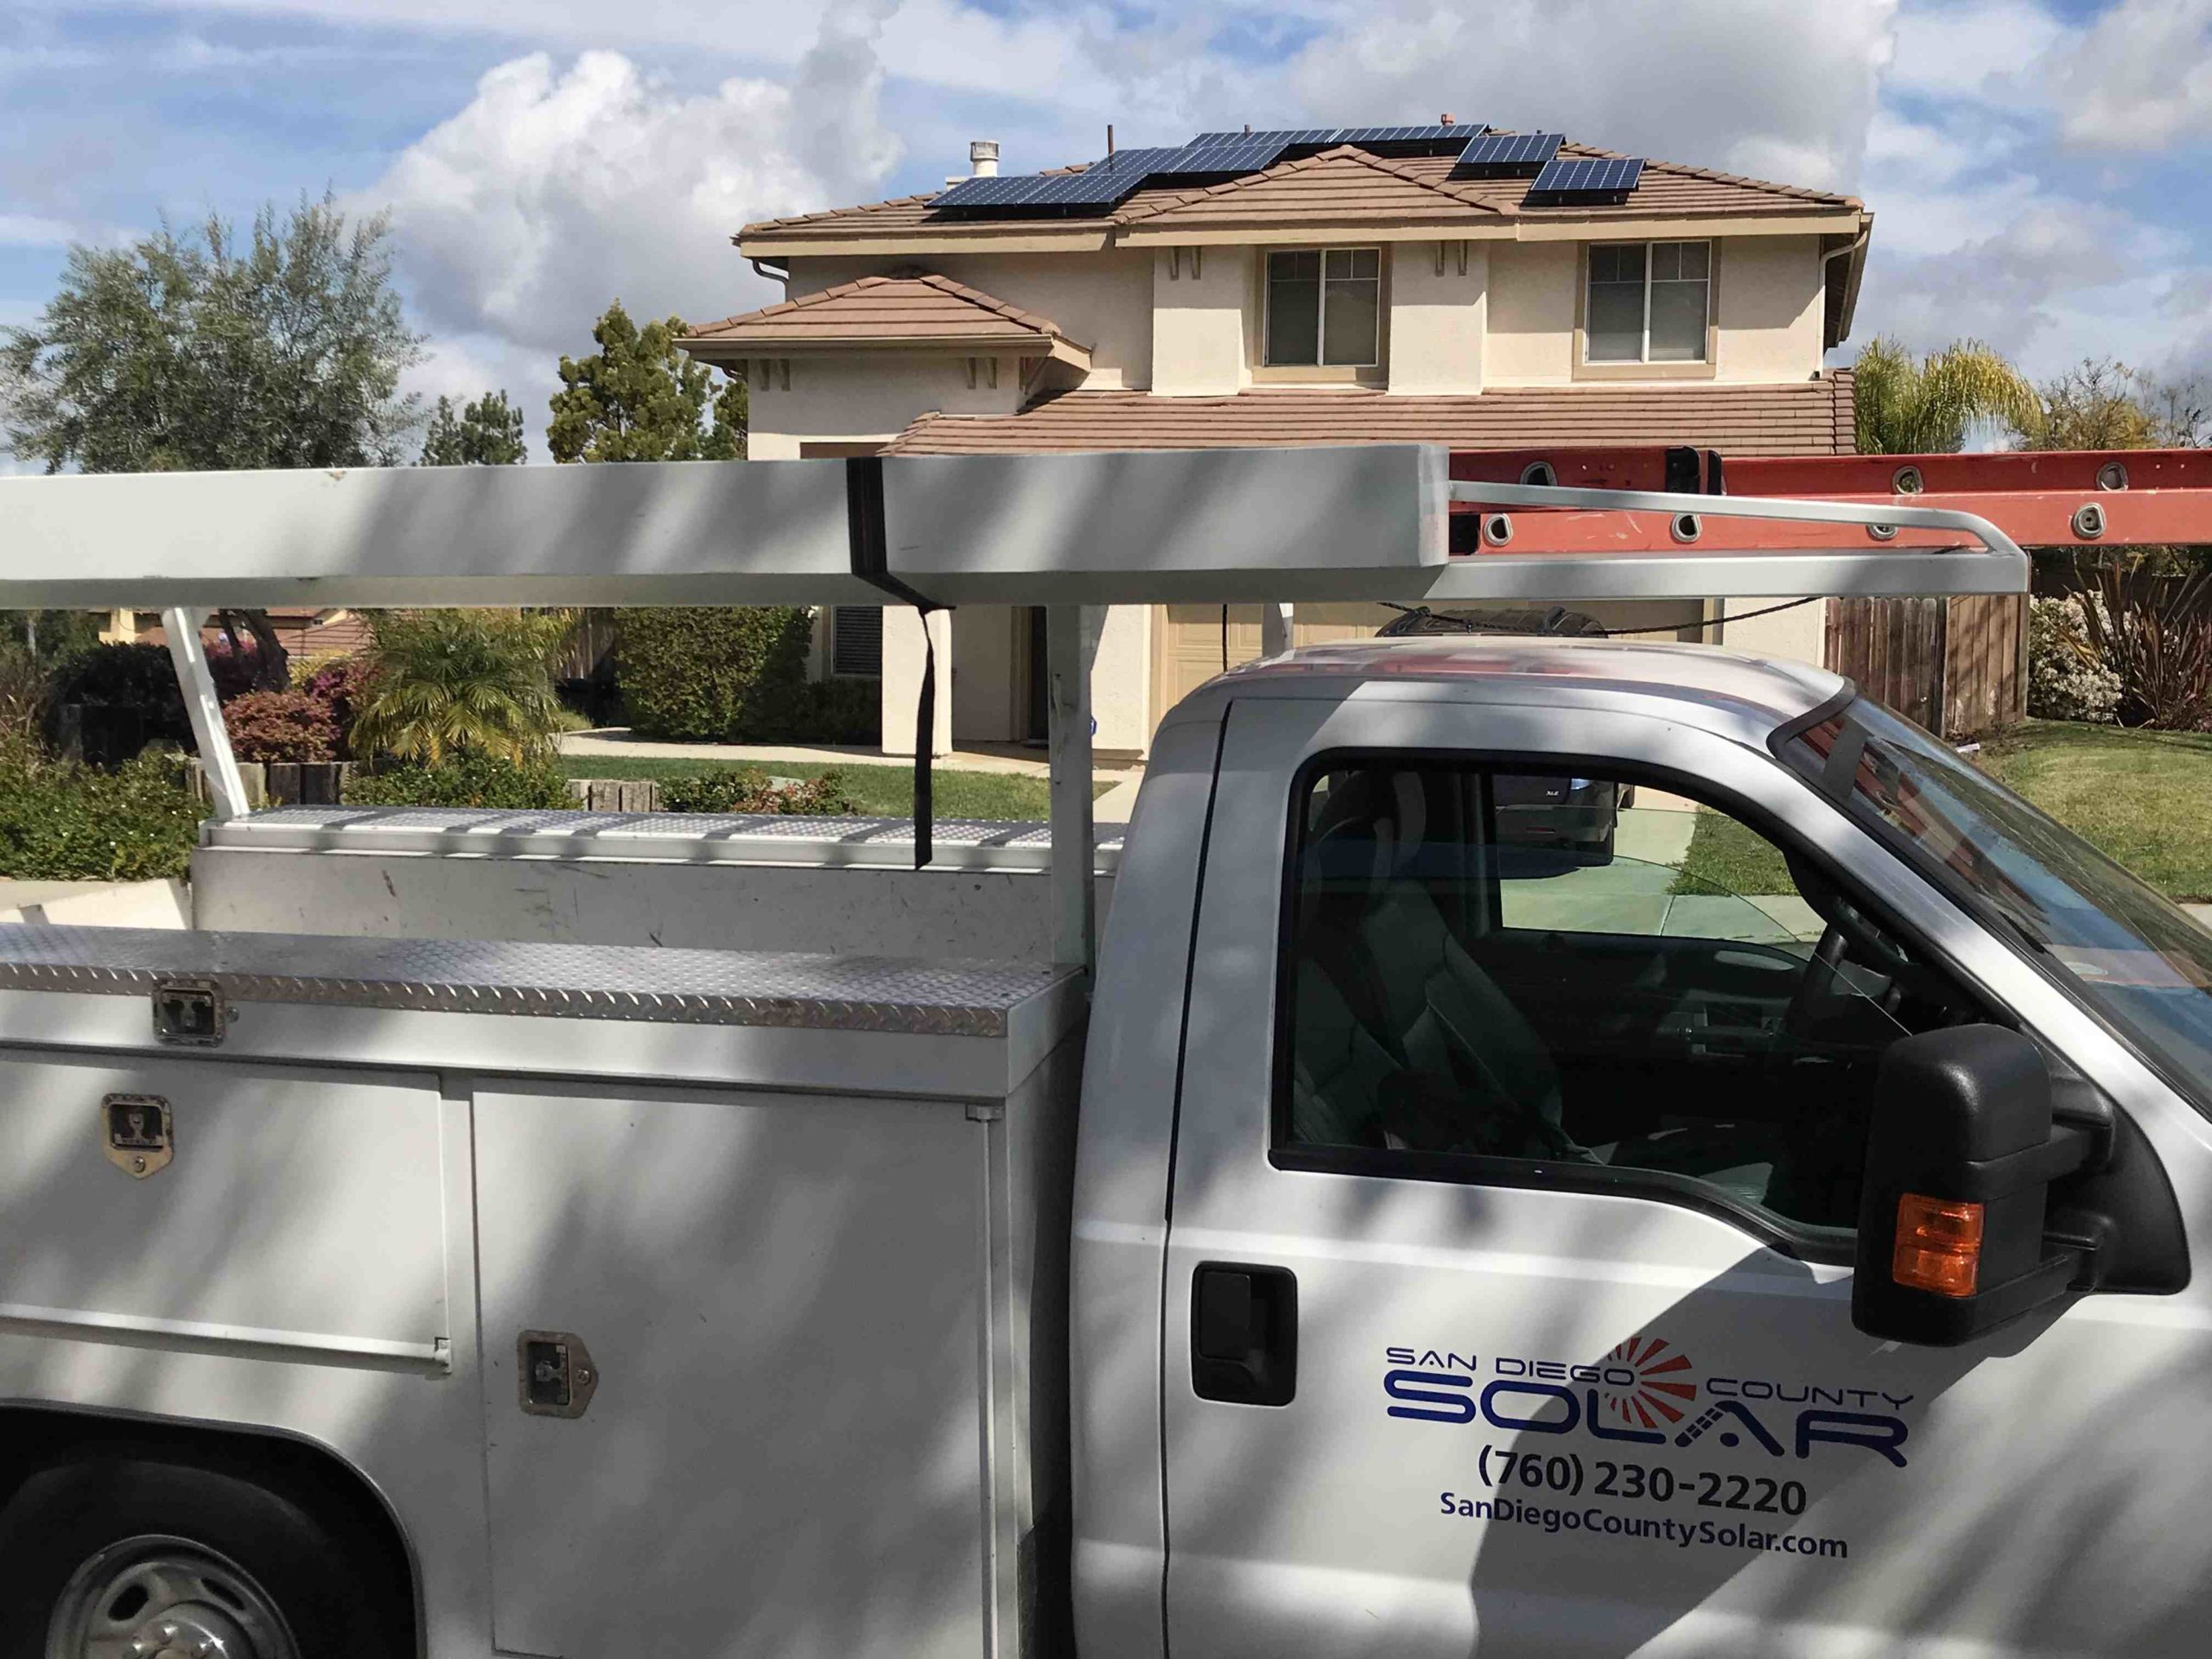 How much it cost to install solar panels at home in Philippines?